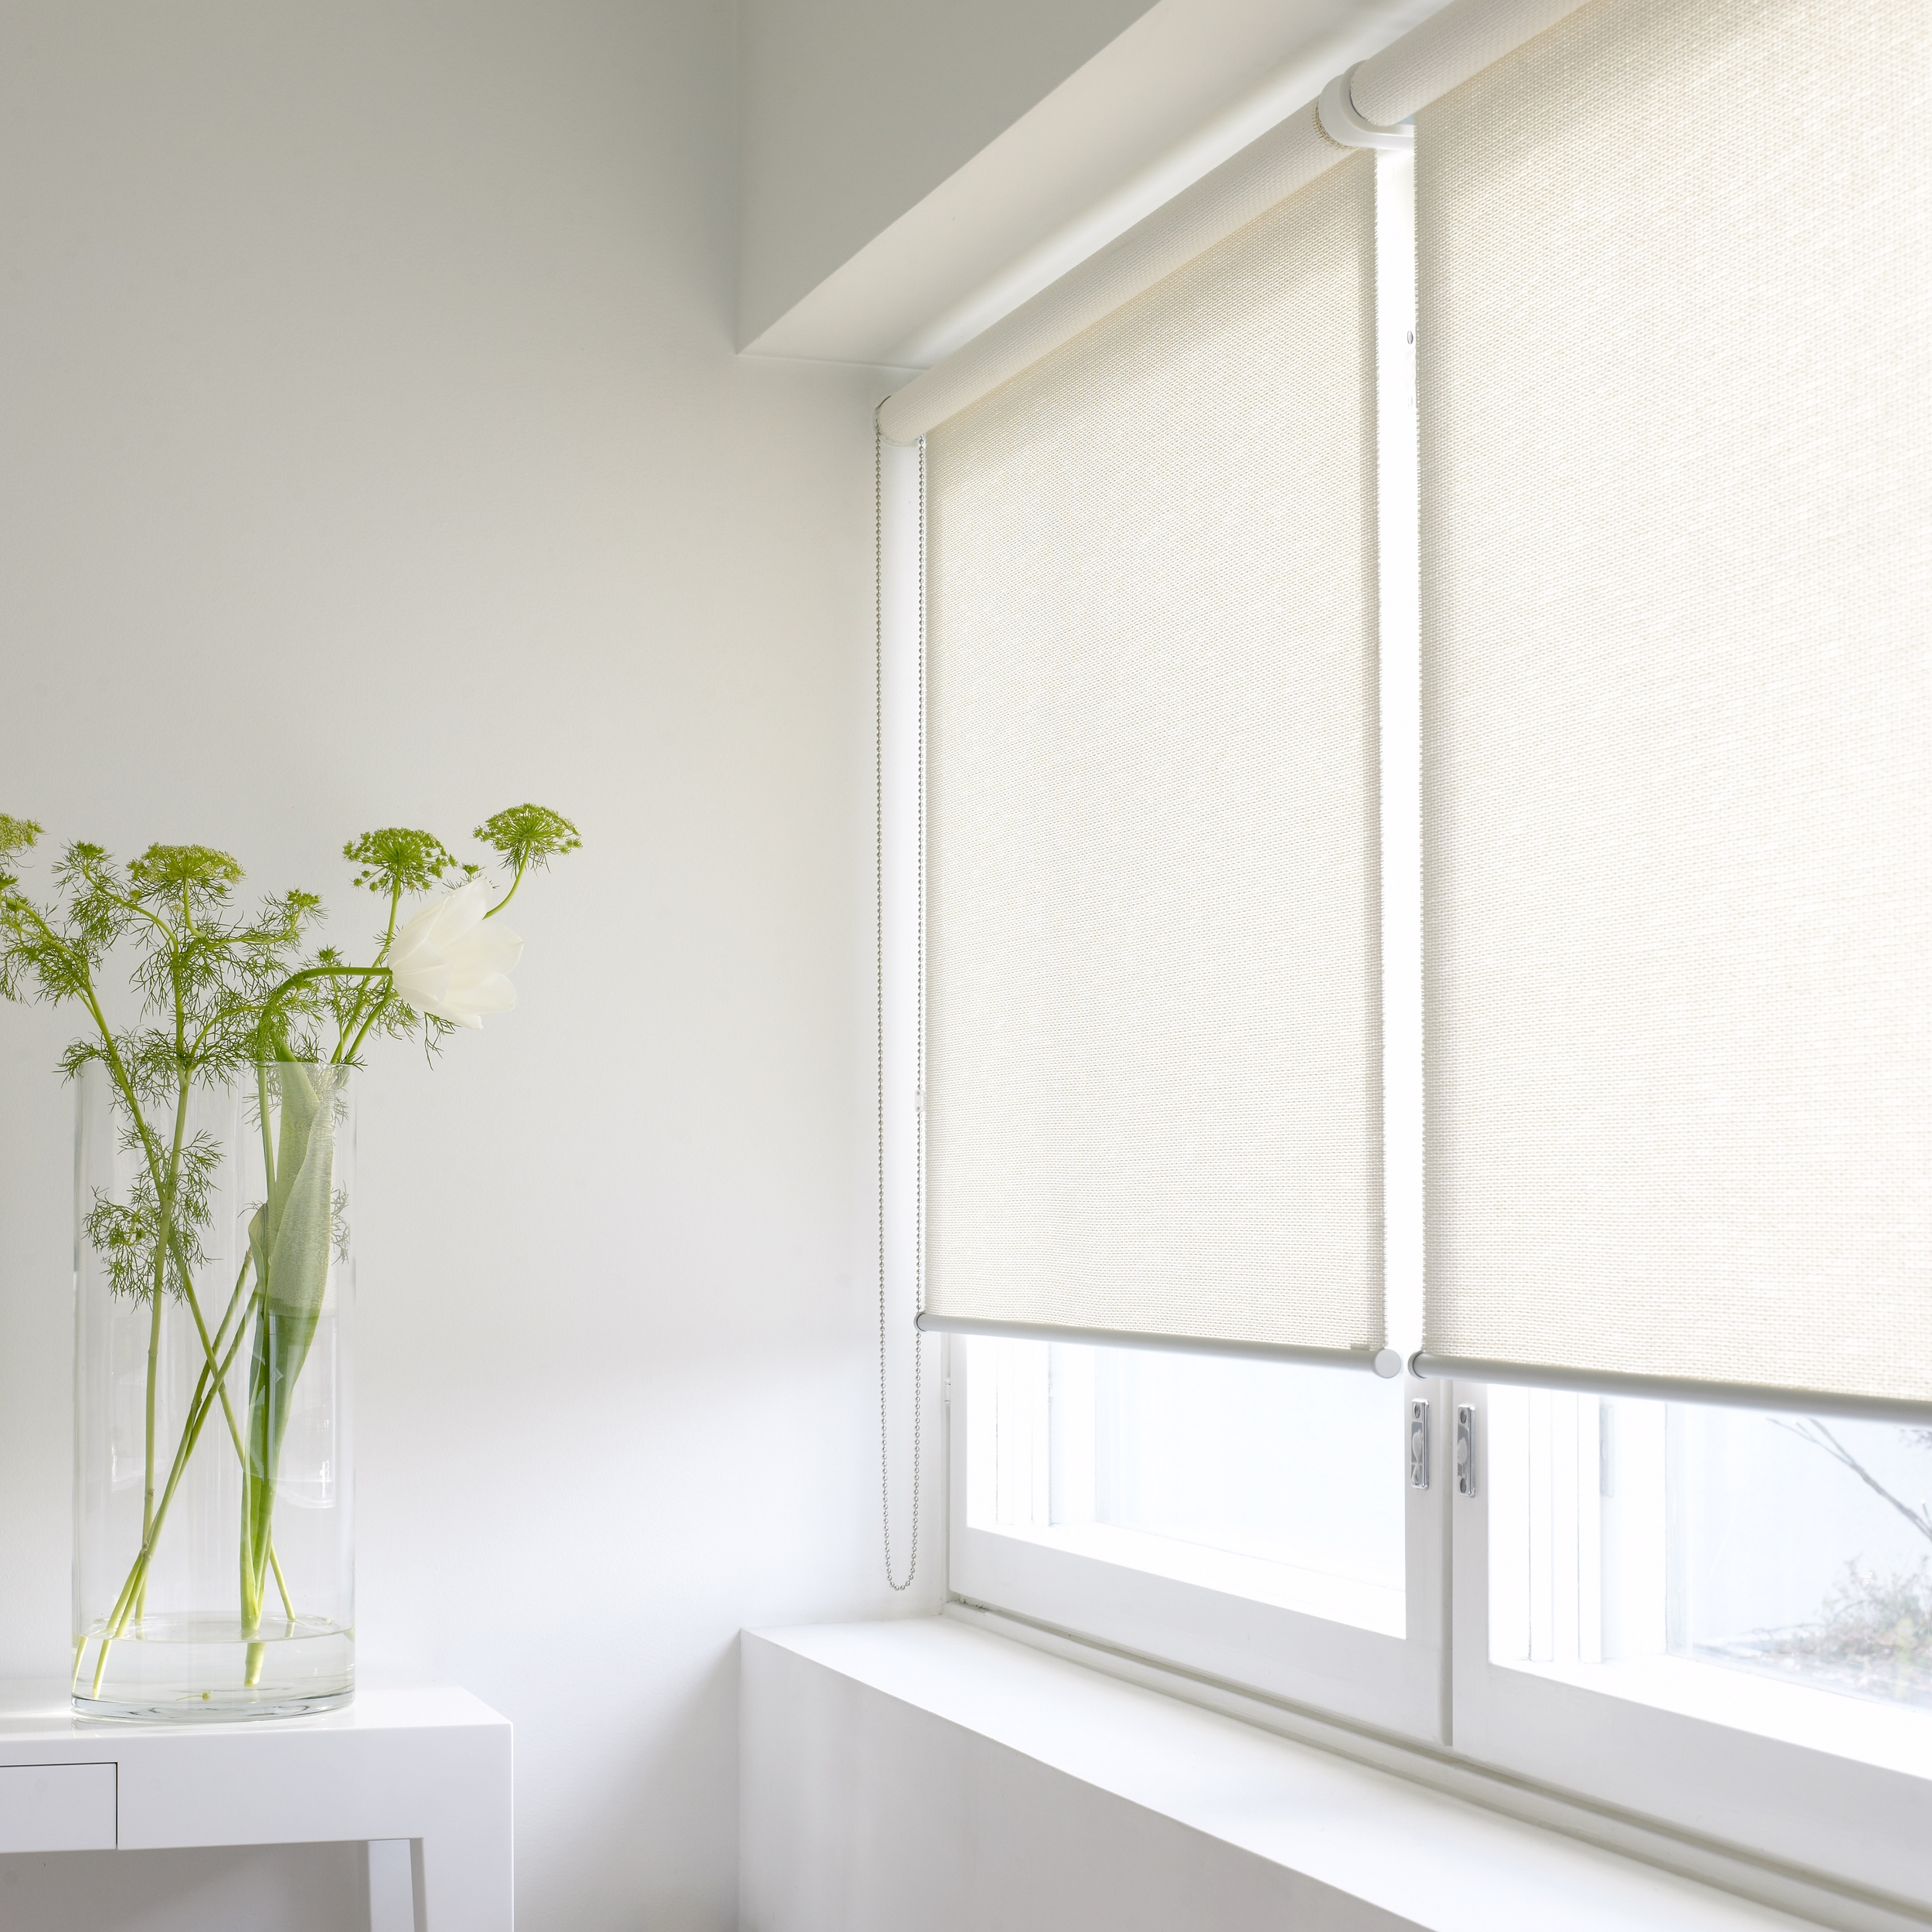 21111 MORNING white fabric, chain operated roller blinds (Silent Gliss 4810) D, aluminium bottom bar